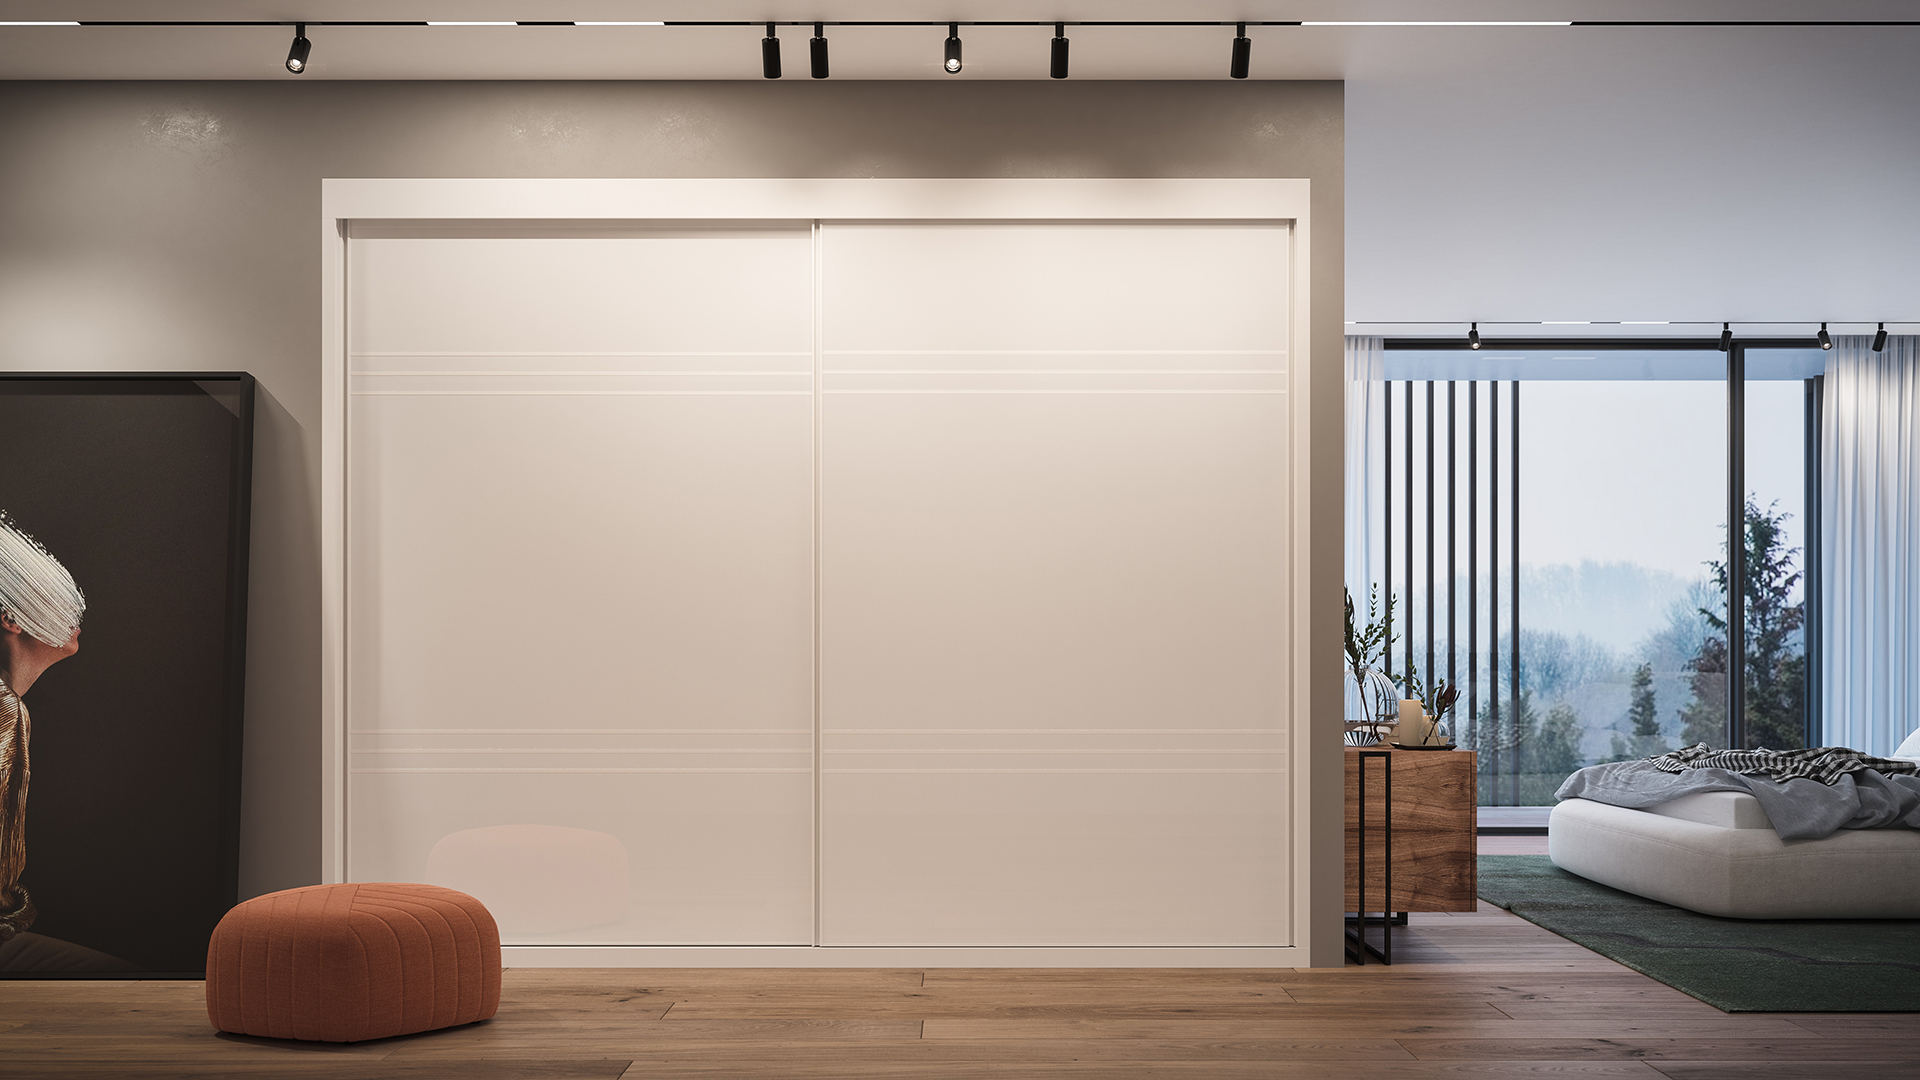 Maayan-Golan_Architectural-Visualization_product-visualization_AGAM-cloests_sliding-door-closet_02